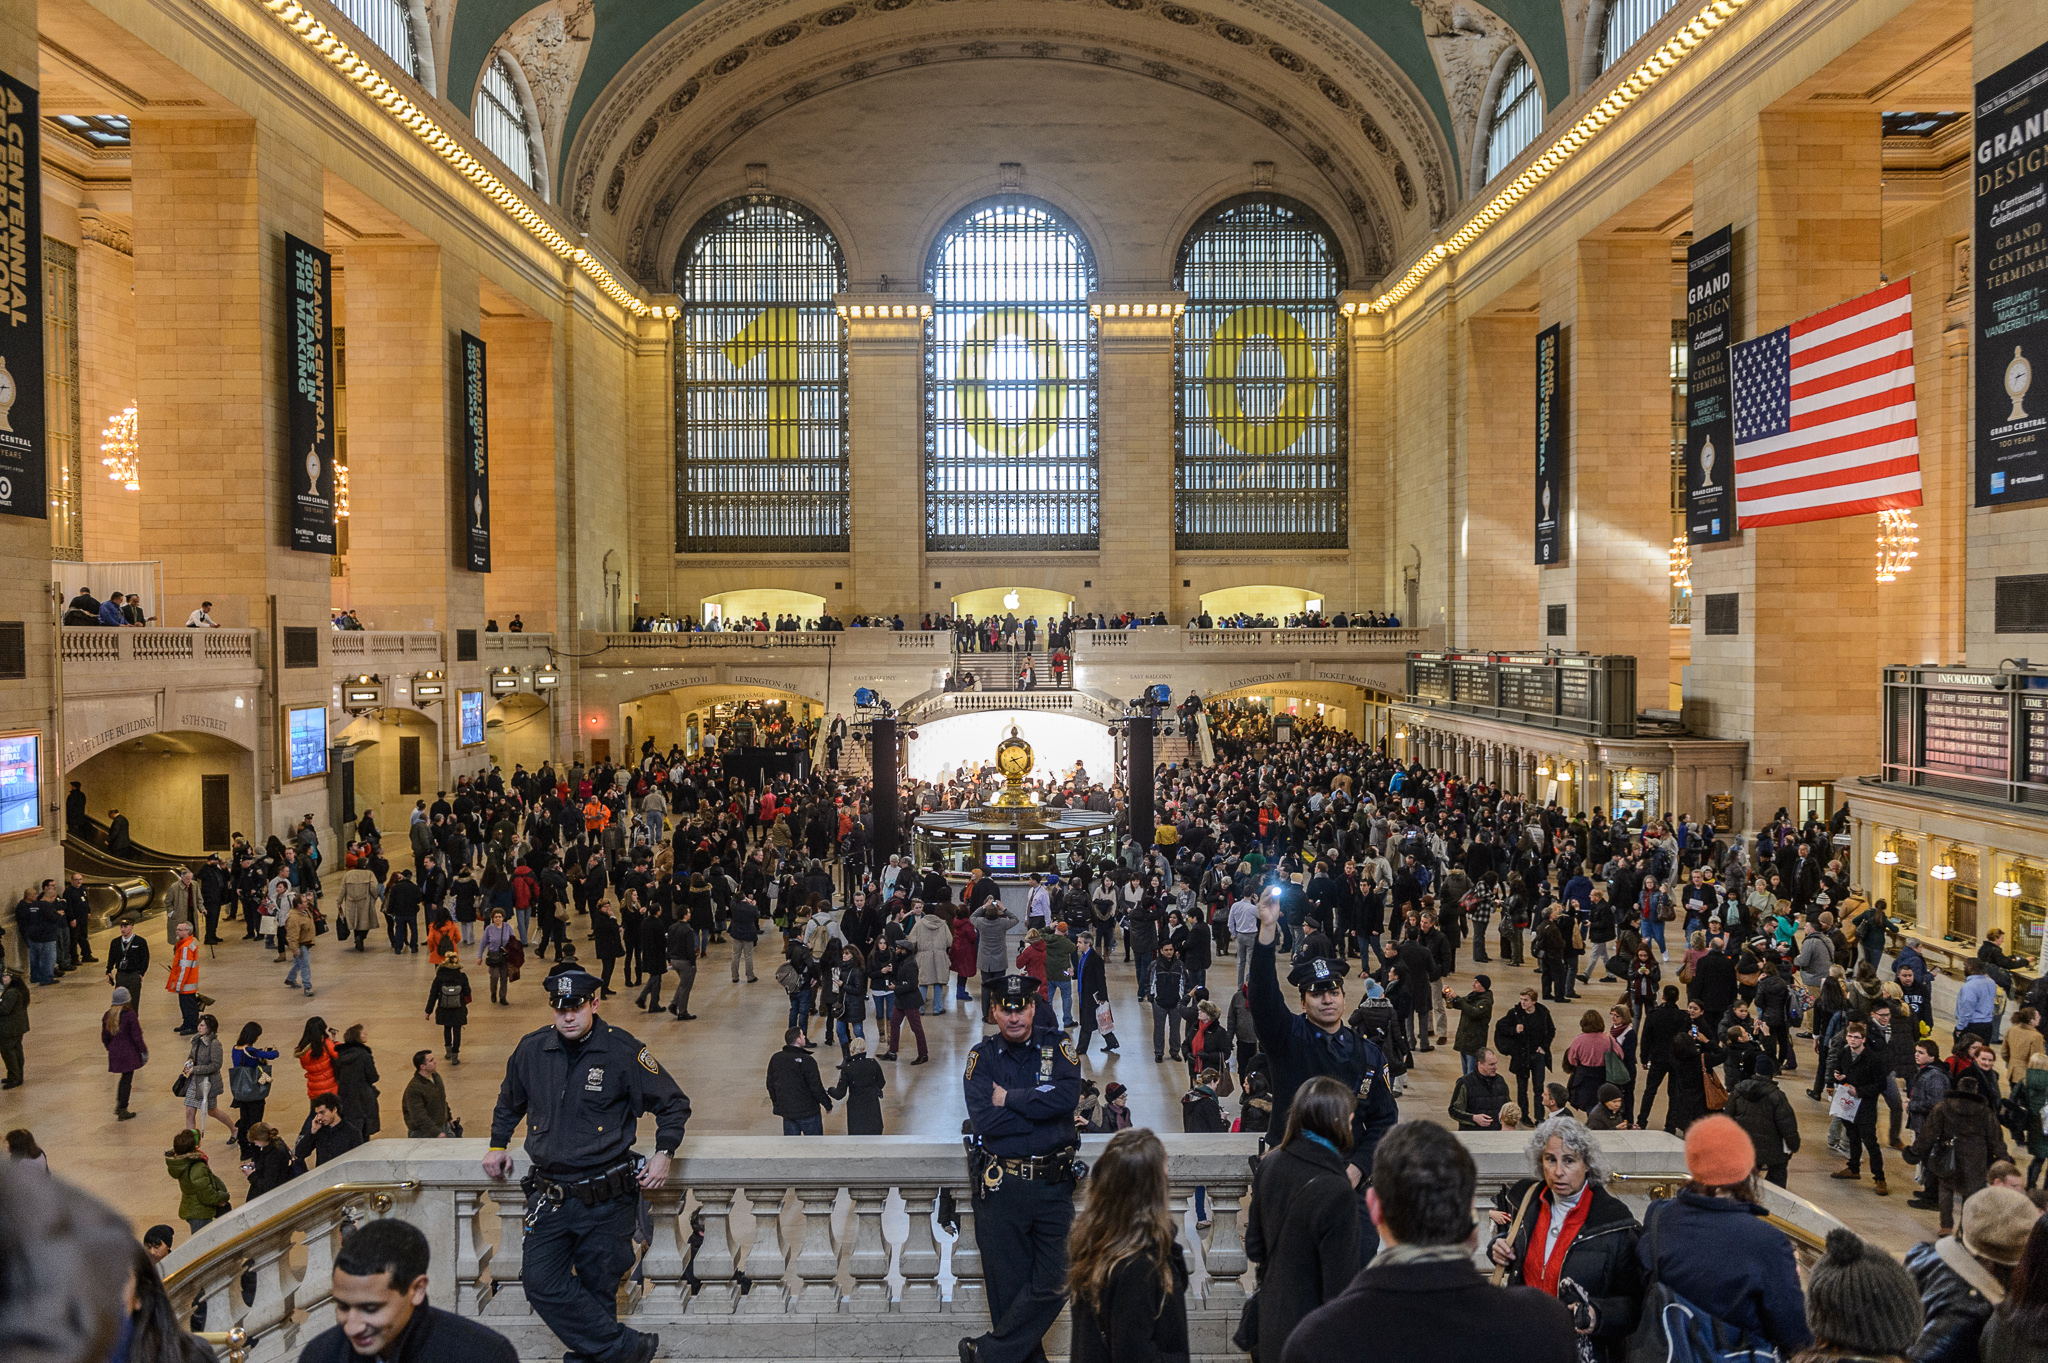 Taste of the Terminal returns with free treats at Grand Central